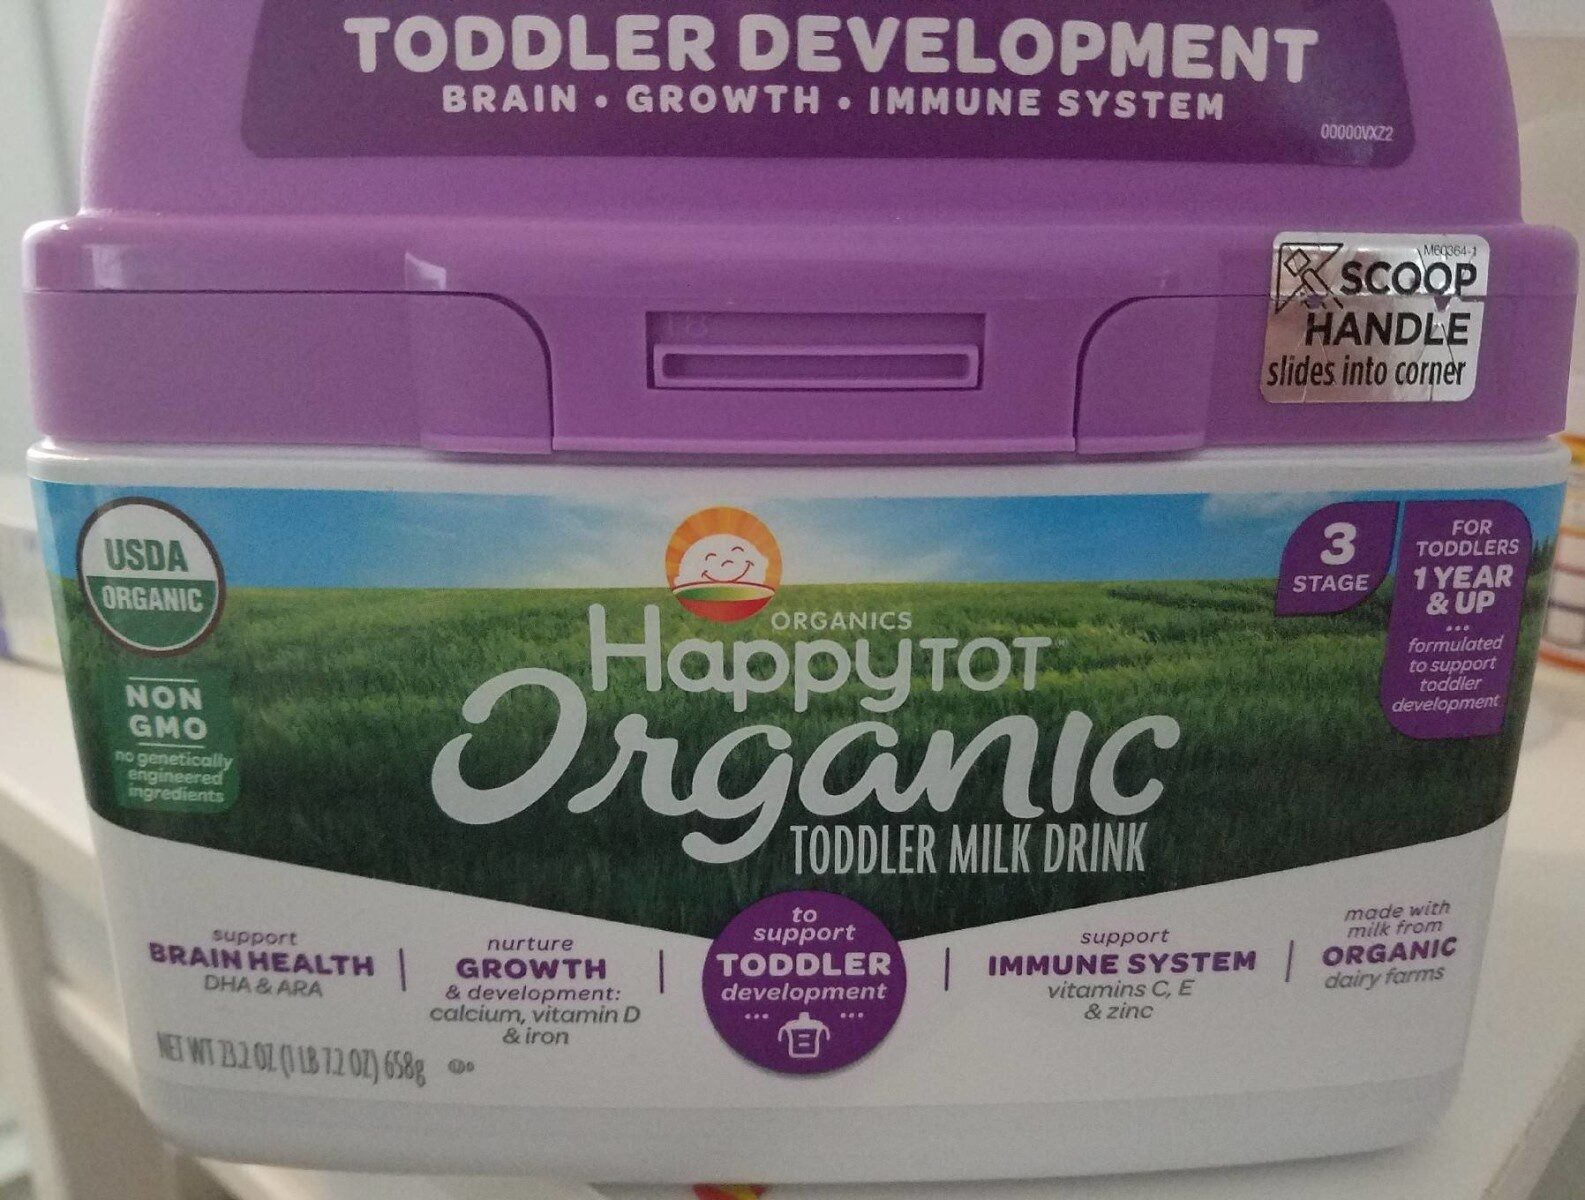 Happytot organic toddler milk drink - Product - en